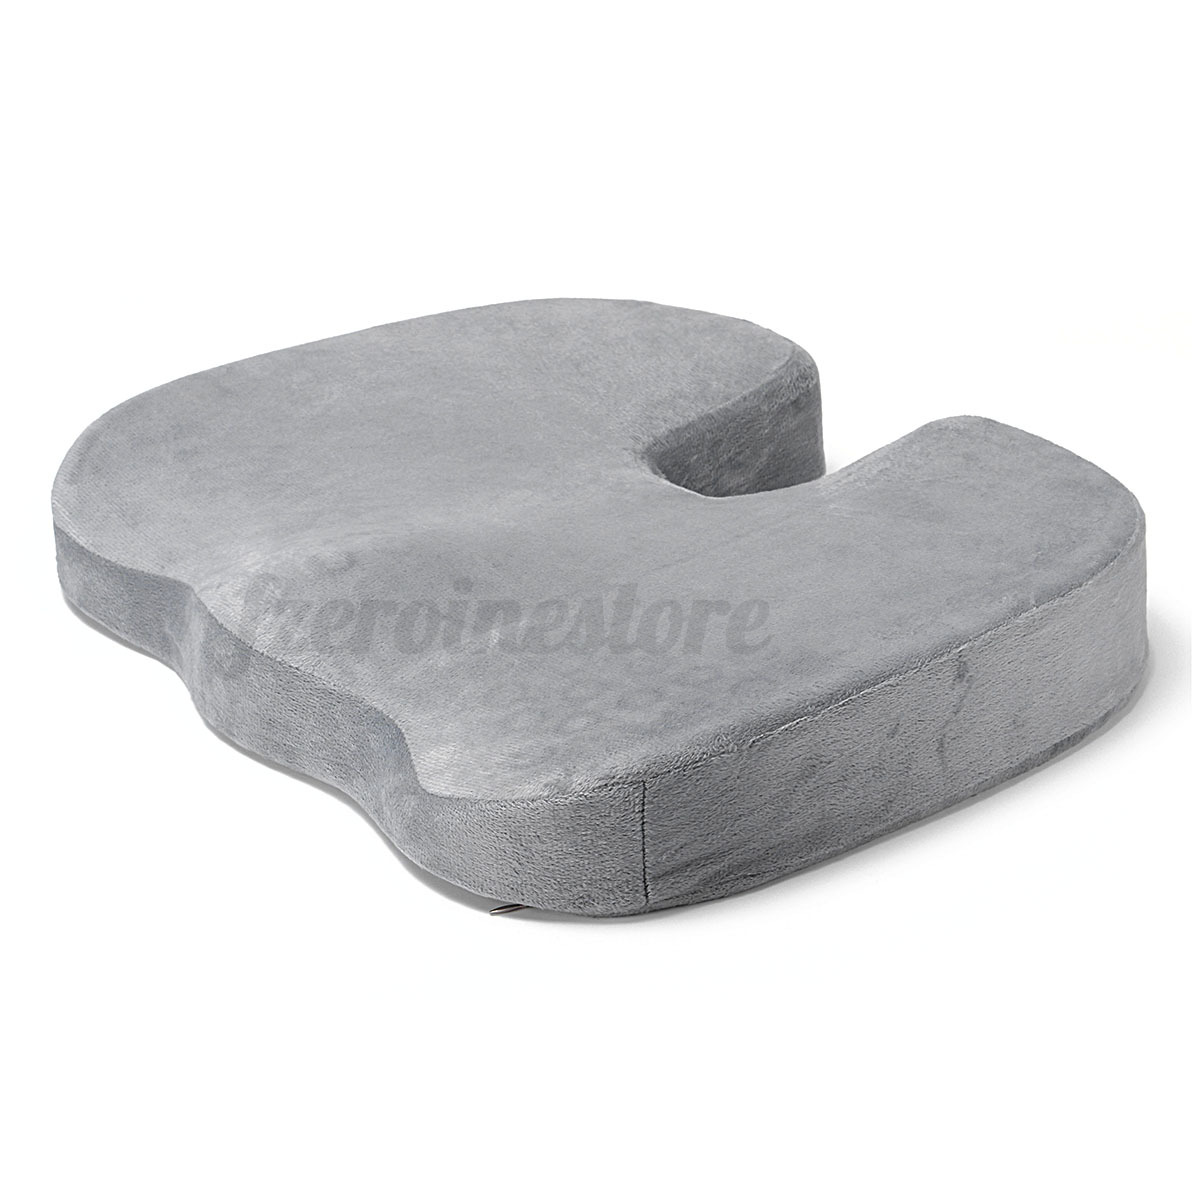 Gel Cushions For Chairs Coccyx Orthopedic Gel Enhanced Comfort Memory Foam Seat